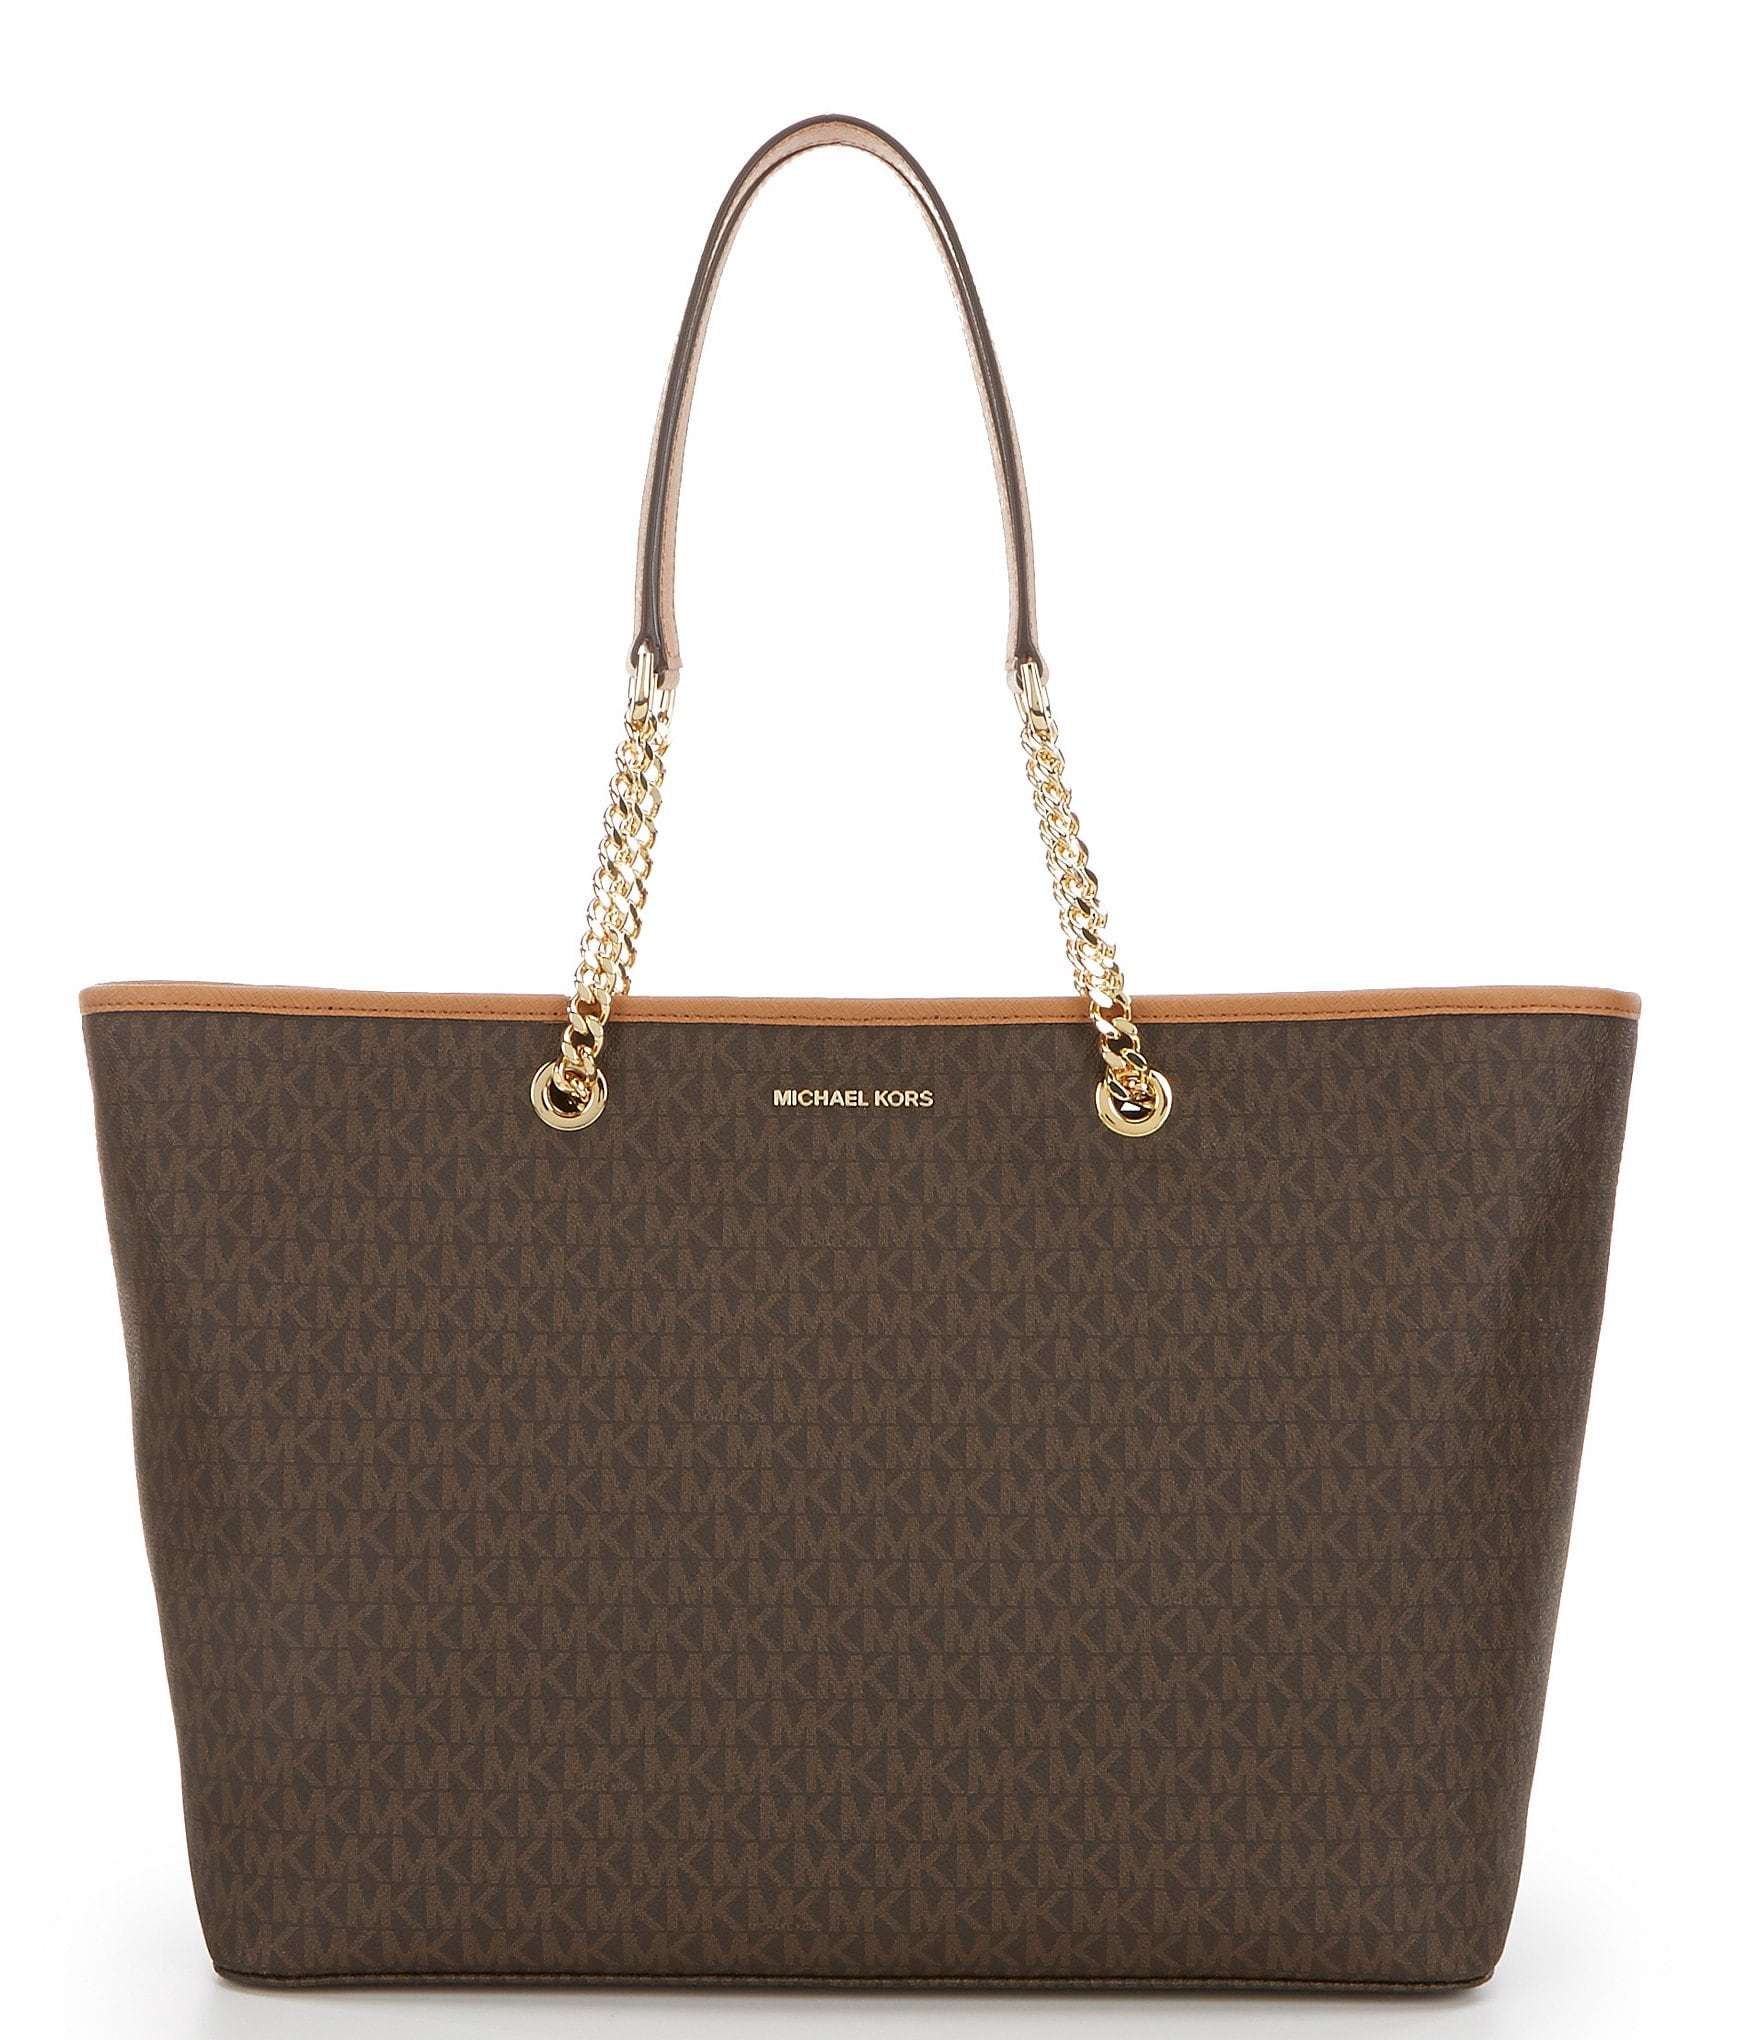 7a708dc1f045 sale on michael kors bags sale > OFF62% Discounted